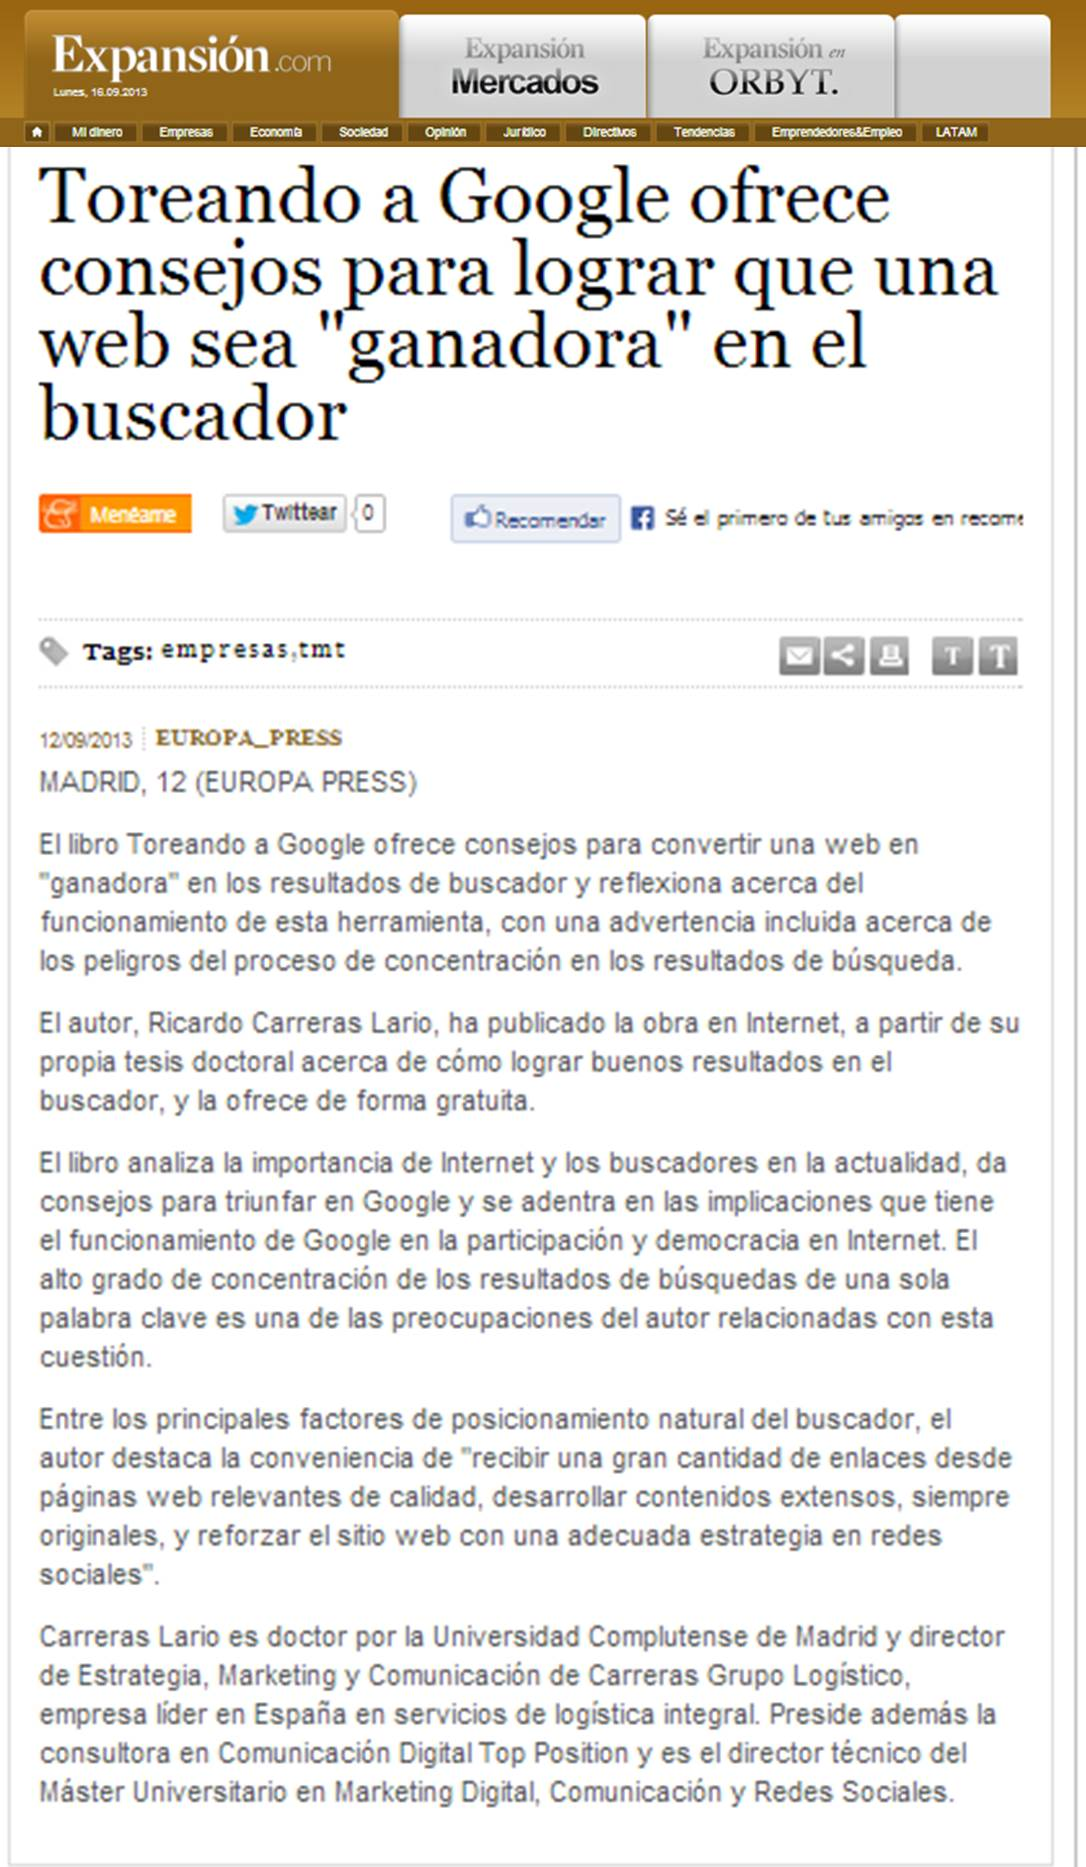 Expansion toreando a Google